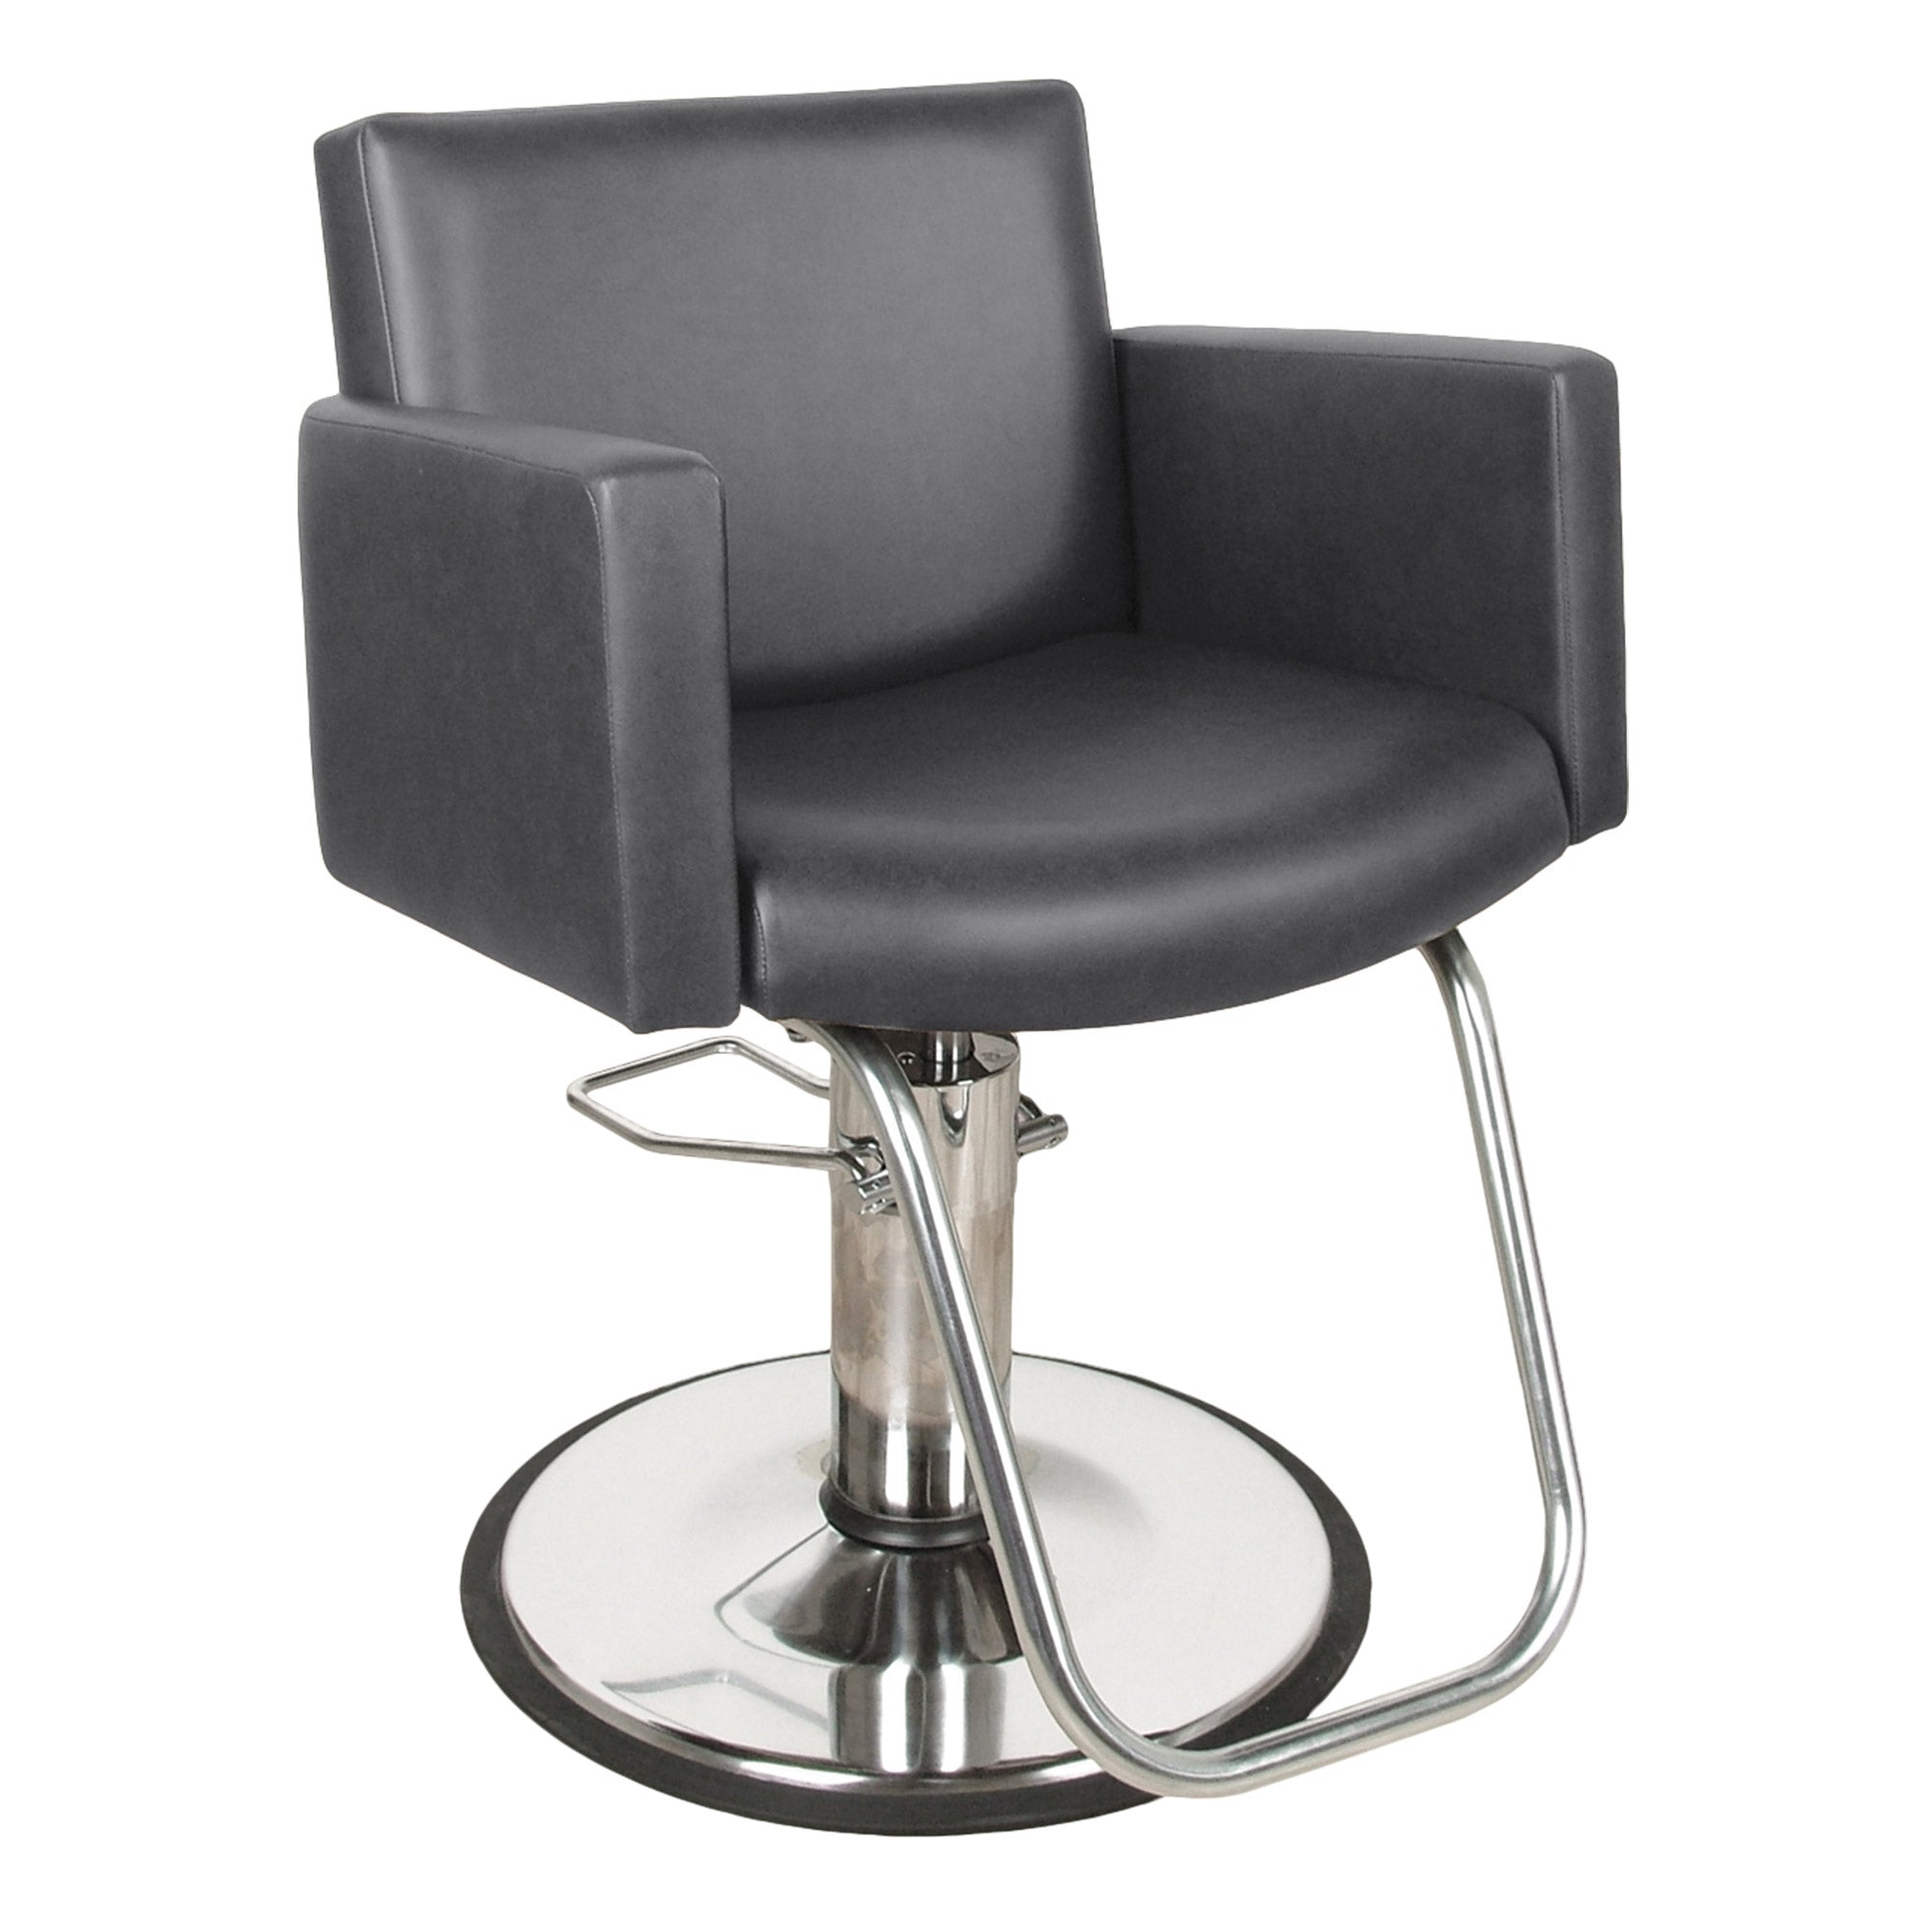 Cigno Styling Chair - School Version - Collins